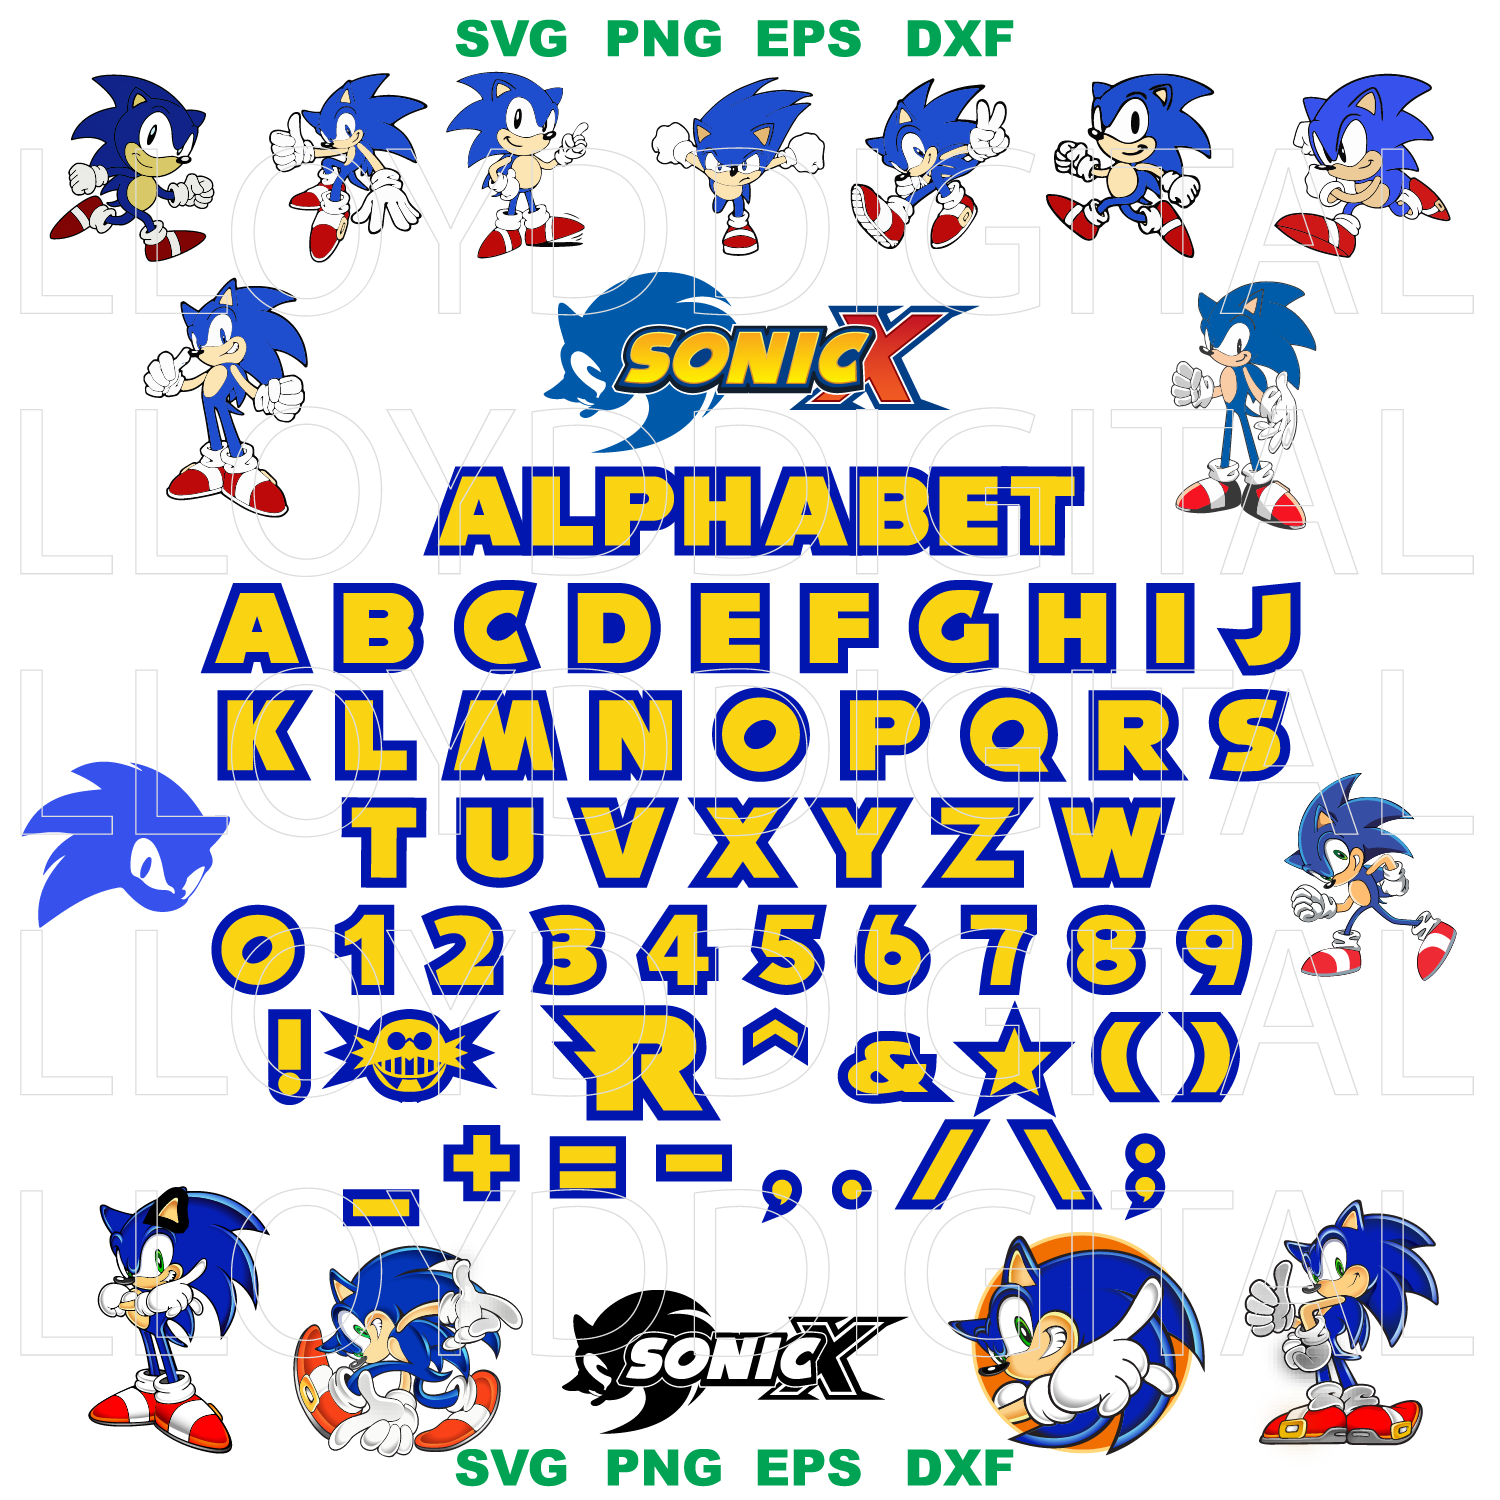 Sonic Svg Sega Videogame Hedgehog Sonic By Lloyd Shop On Zibbet